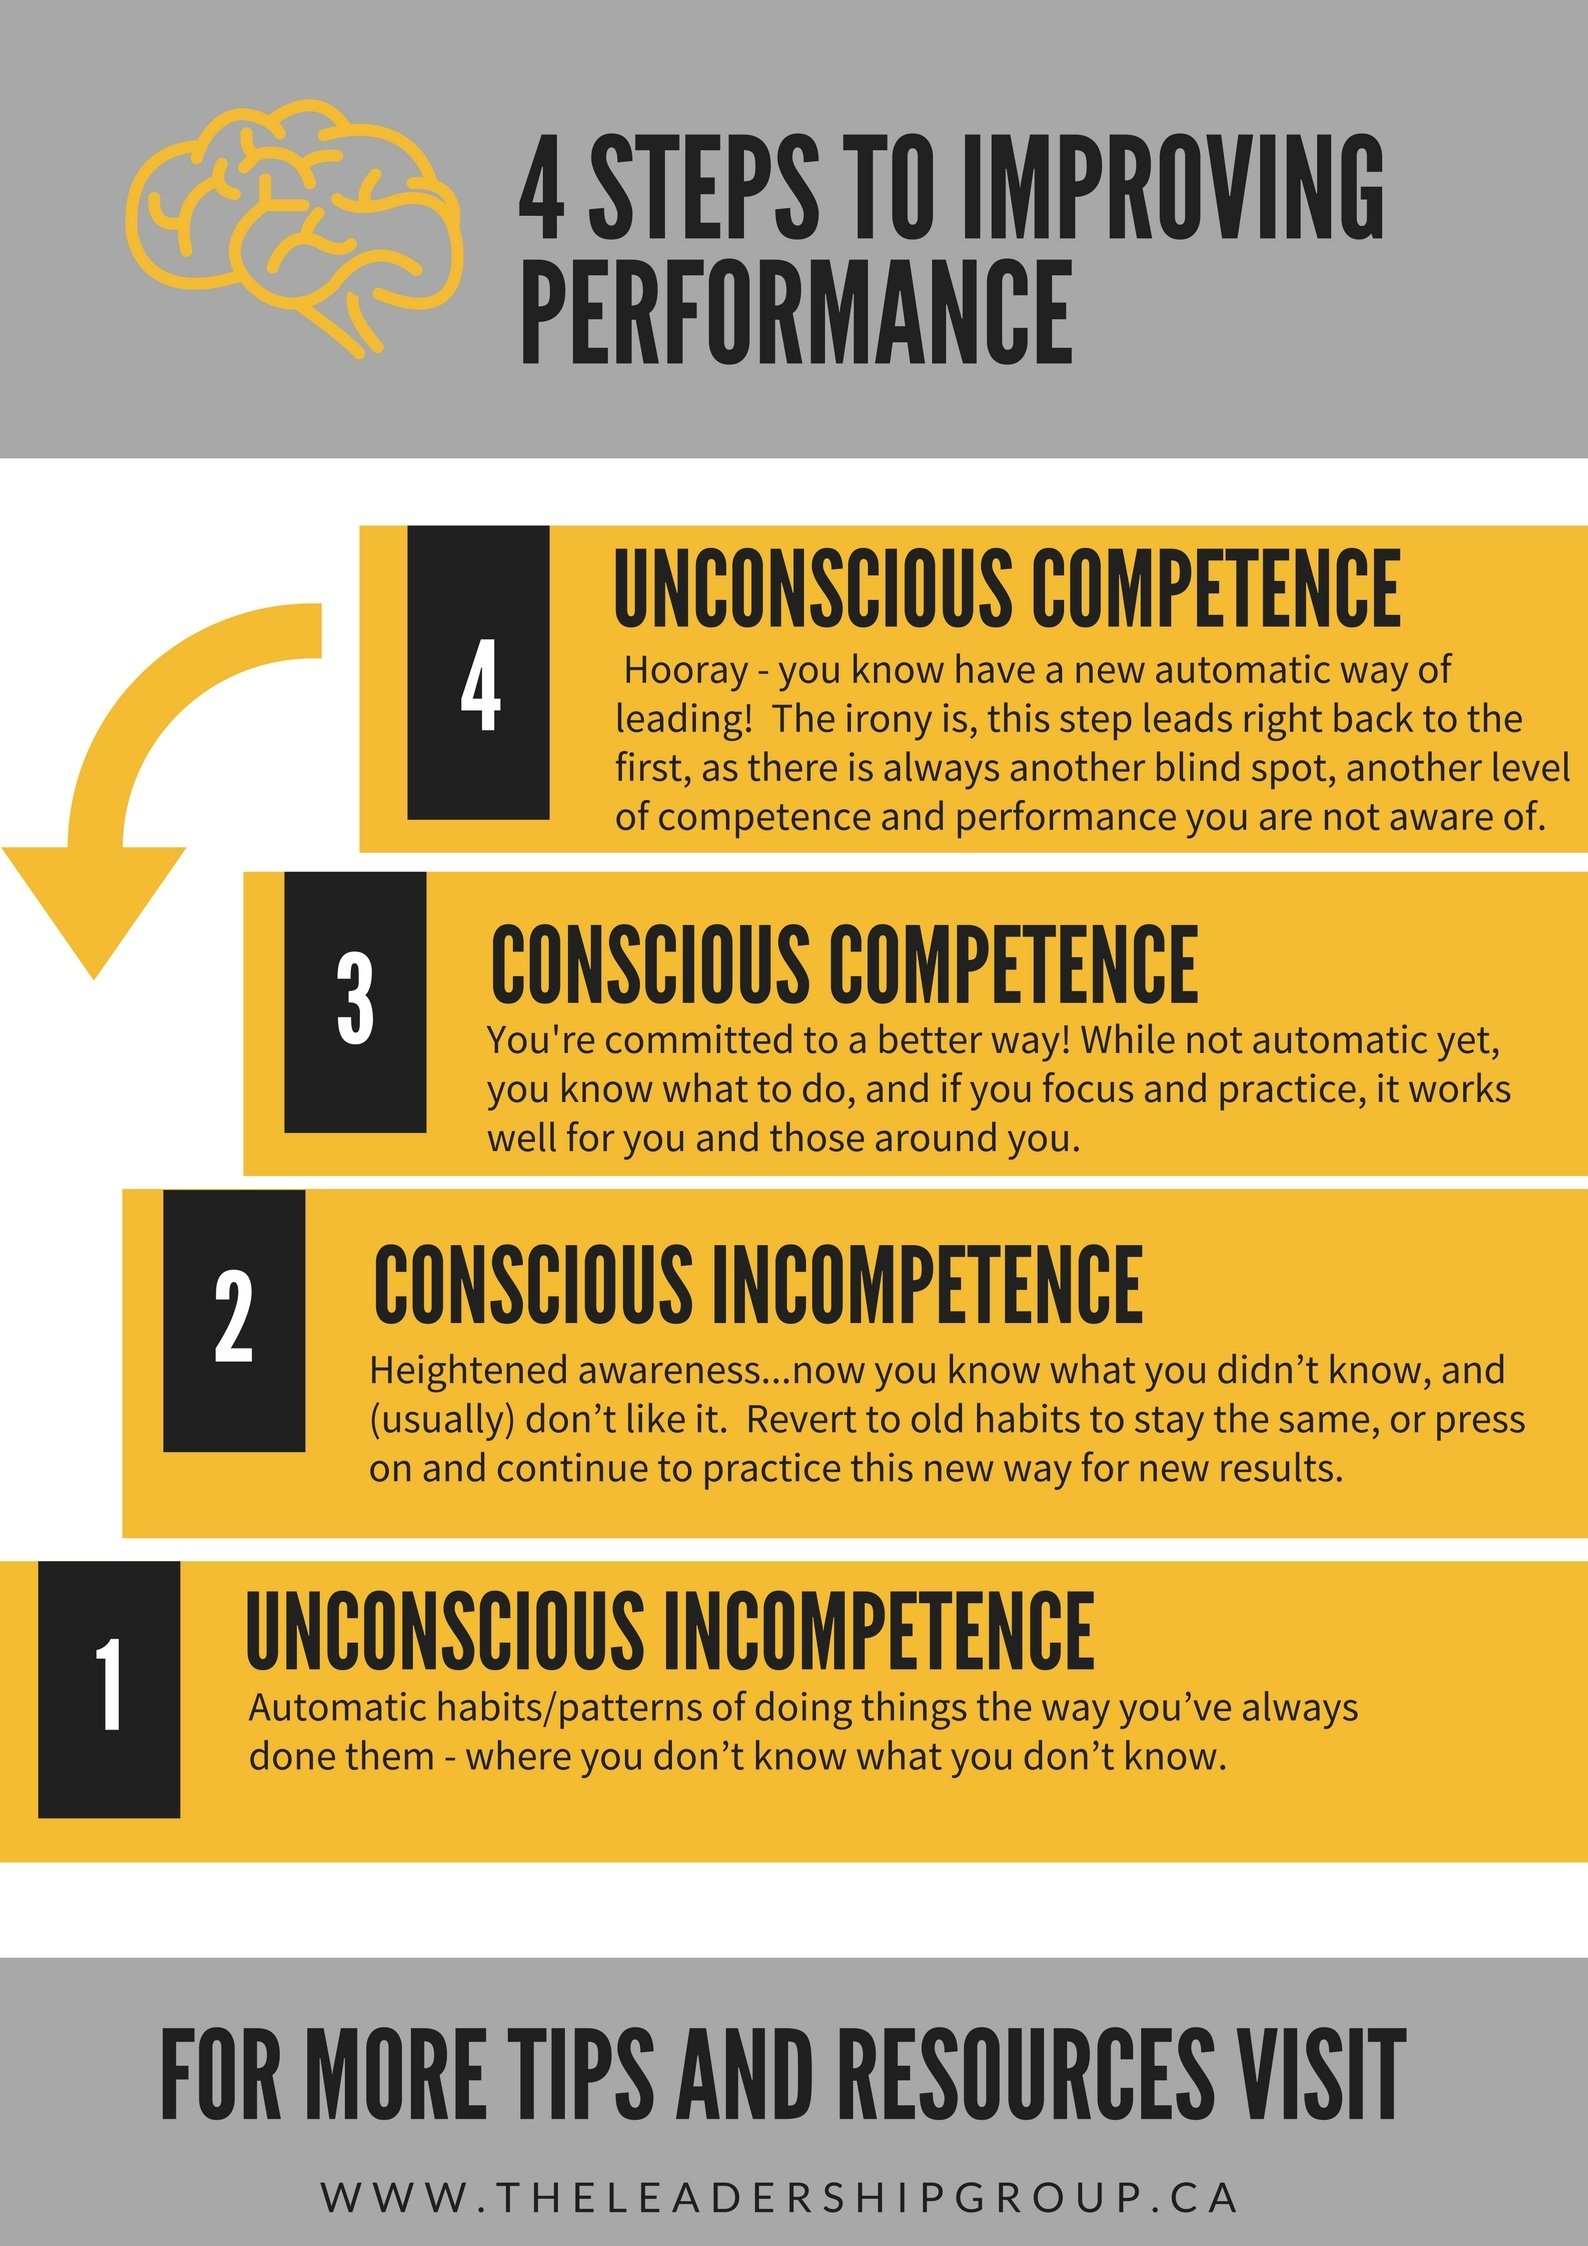 4 Steps to improving performance